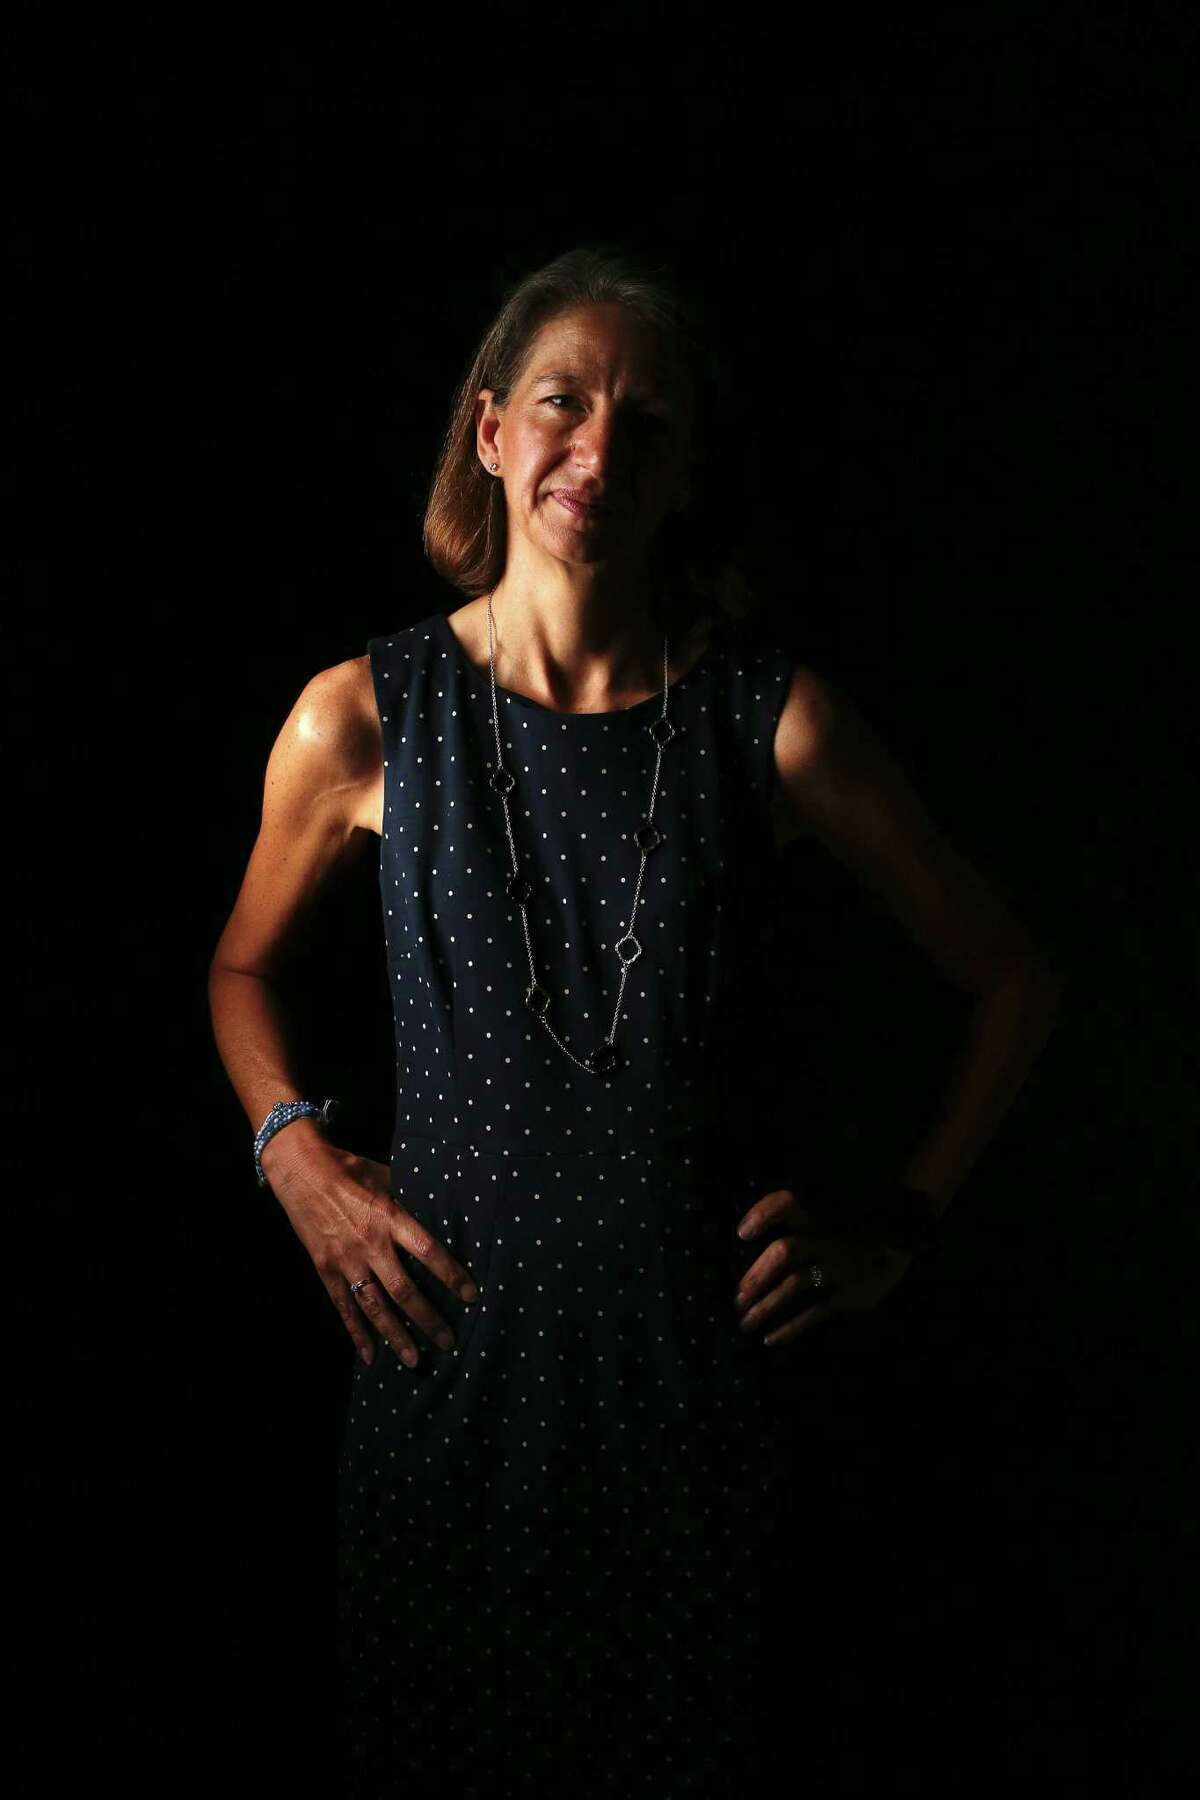 Dr. Rebecca Richards-Kortum poses for a photo at Rice University Friday, Oct. 7, 2016, in Houston. (Yi-Chin Lee / Houston Chronicle )